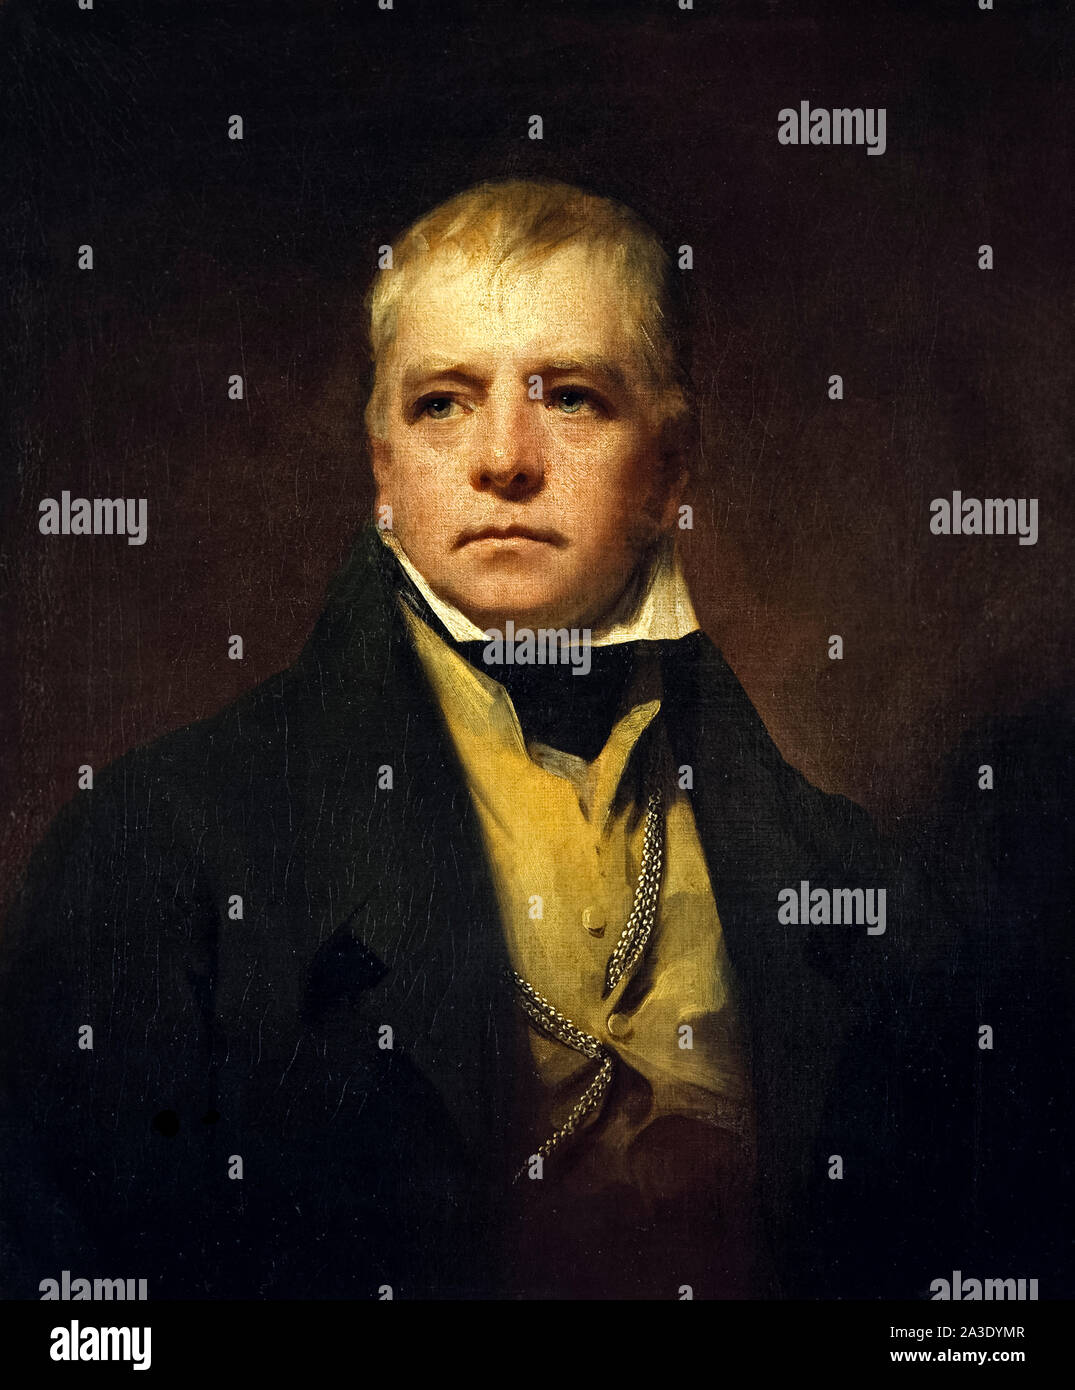 Sir Walter Scott (1771-1832) Scottish author, poet and historian whose works remain classics of English literature. Oil painting by Sir Henry Raeburn (1756-1823) painted in 1822. Stock Photo